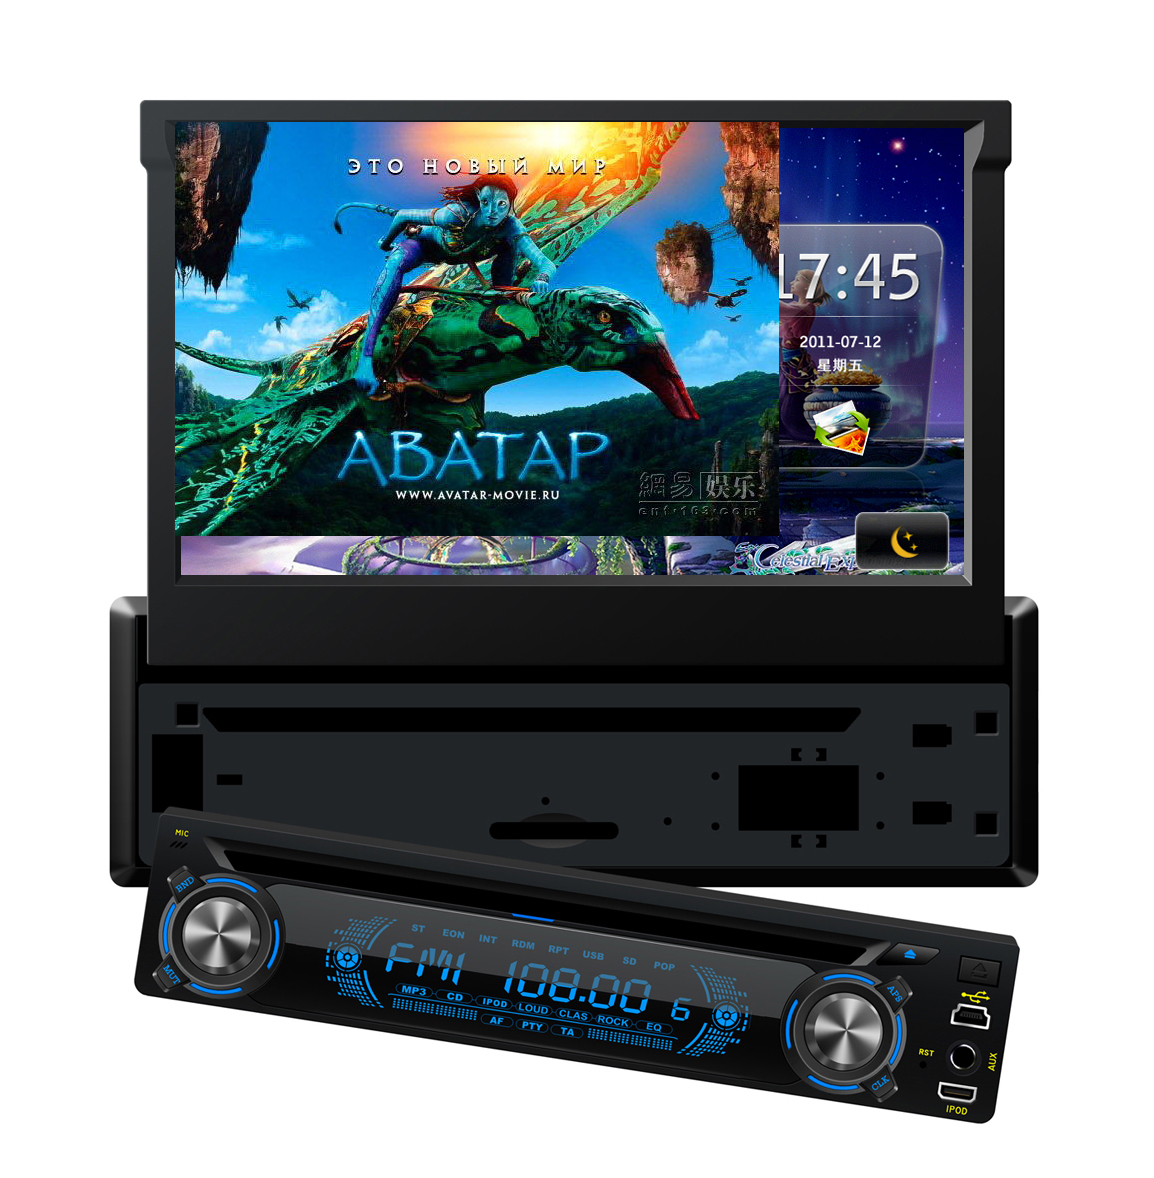 Autoradio AGW92 GPS Bluetooth 1DIN DIVX DVD MP3 USB SD RDS IPOD PIP façade détachable (Windows processeur 1GHZ)